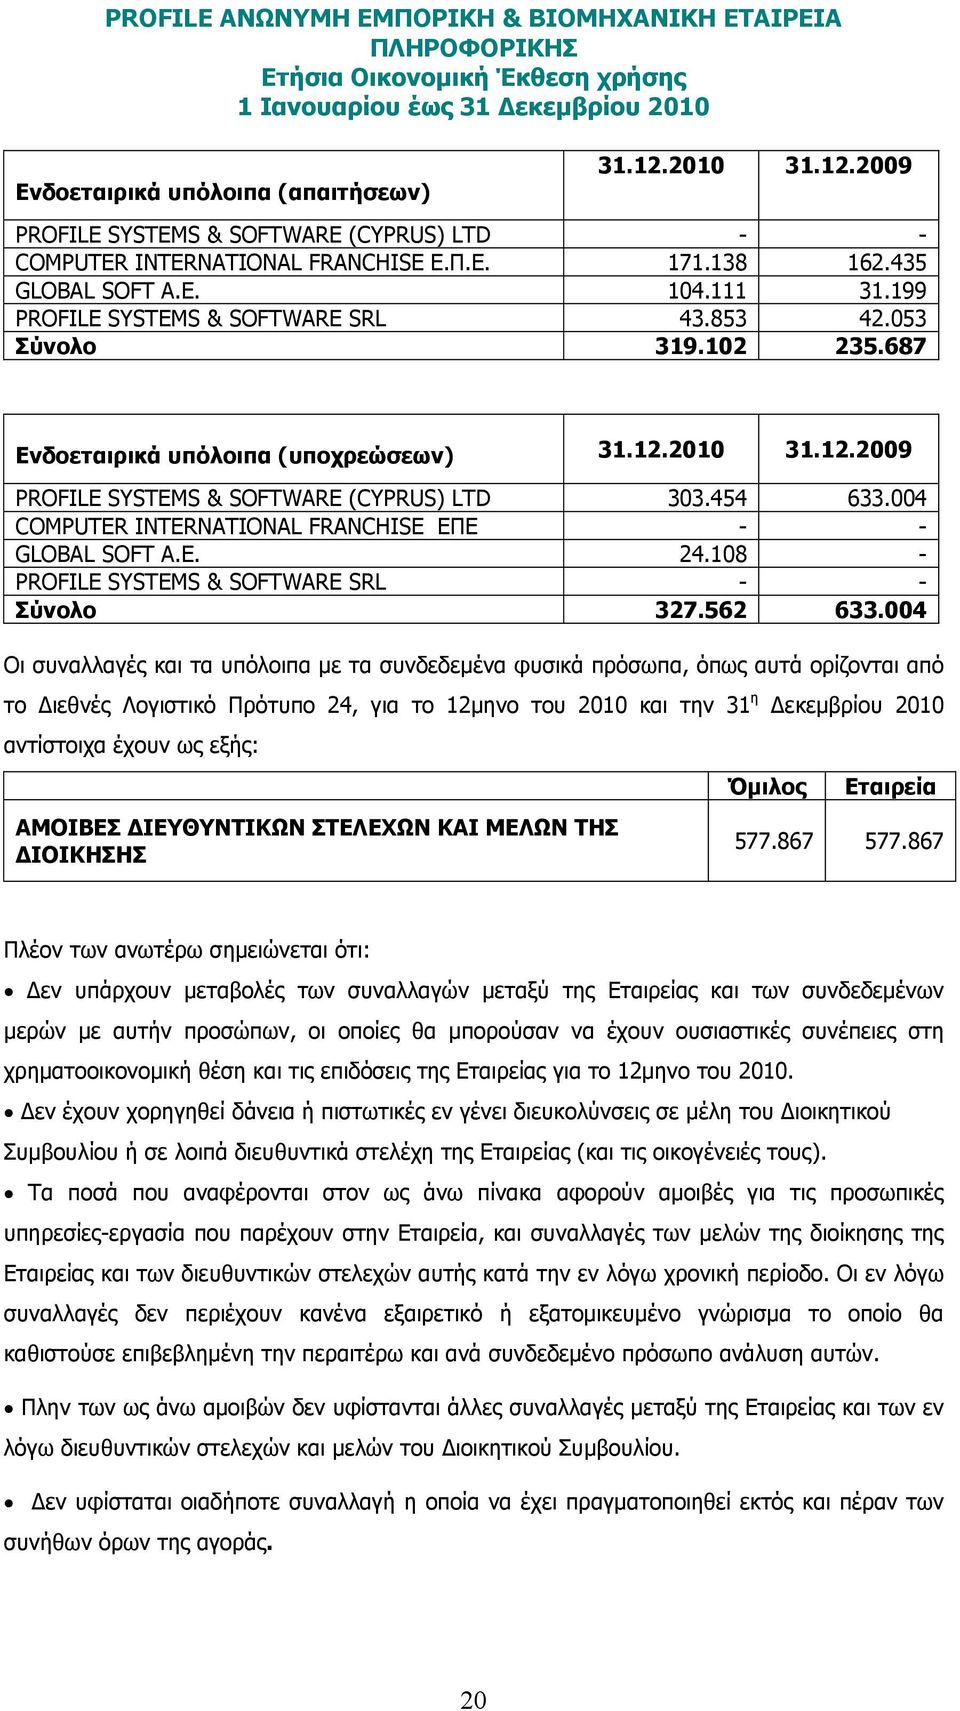 004 COMPUTER INTERNATIONAL FRANCHISE ΕΠΕ - - GLOBAL SOFT A.E. 24.108 - PROFILE SYSTEMS & SOFTWARE SRL - - Σύνολο 327.562 633.